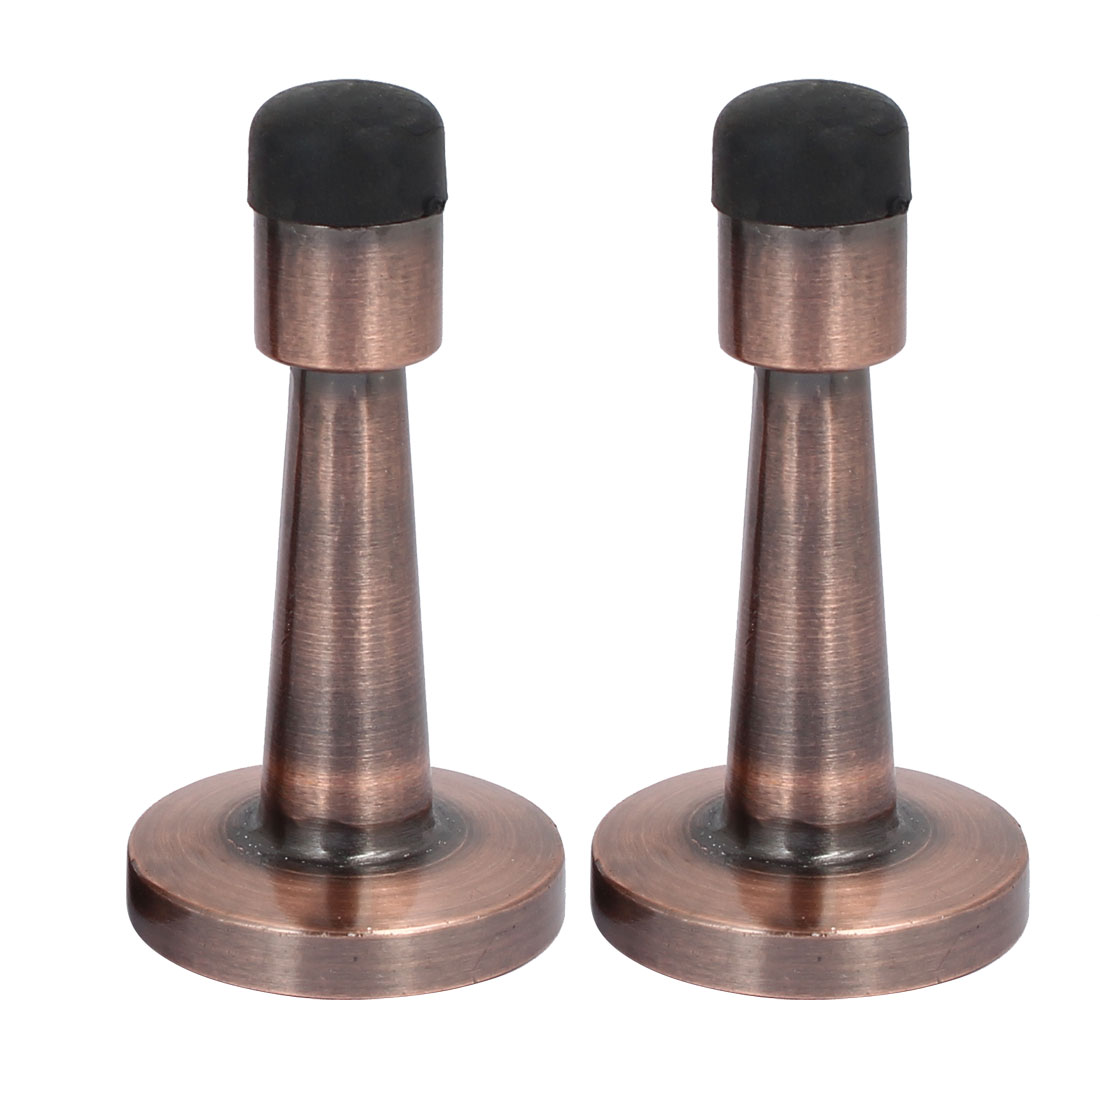 40mm x 80mm Round Base Wall Mounted Doorstop Door Stoppers Copper Tone 2pcs